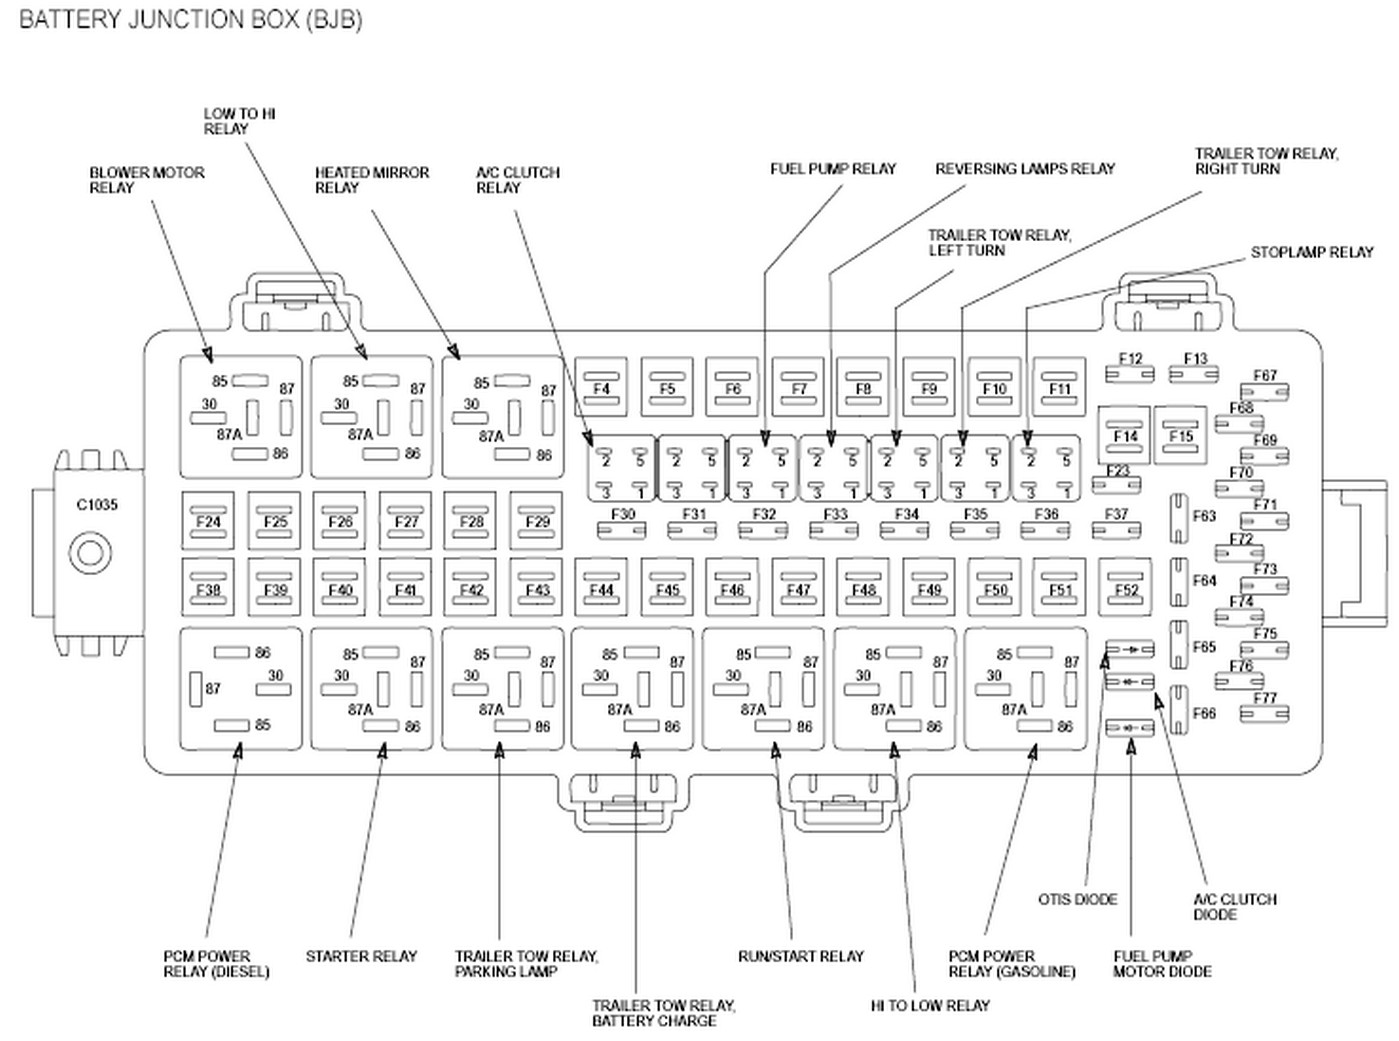 2011 ford f250 fuse box diagram Zoinyhu 2012 f250 fuse box location 2009 ford fusion fuse box diagram 2012 ford edge fuse box diagram at crackthecode.co